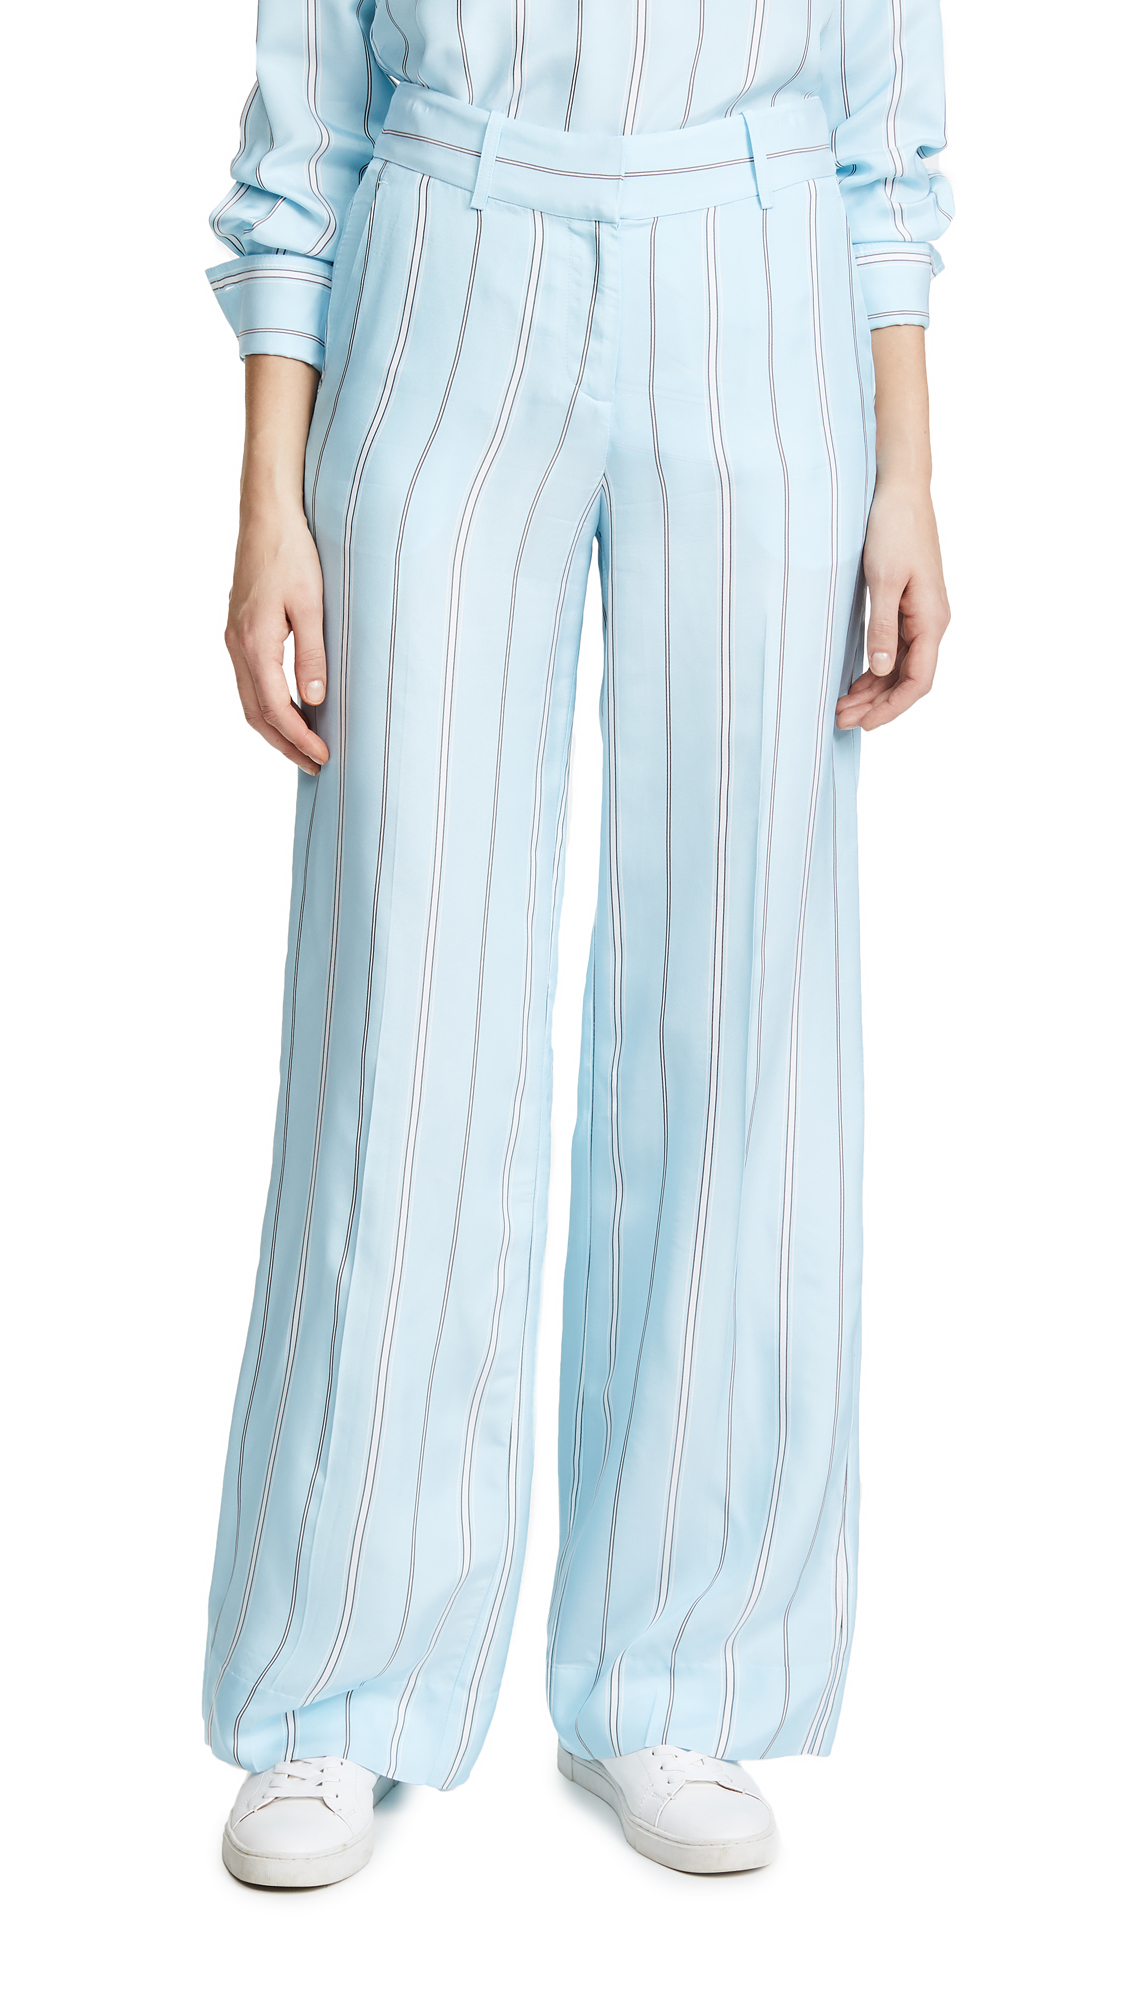 Derek Lam 10 Crosby Striped Pants